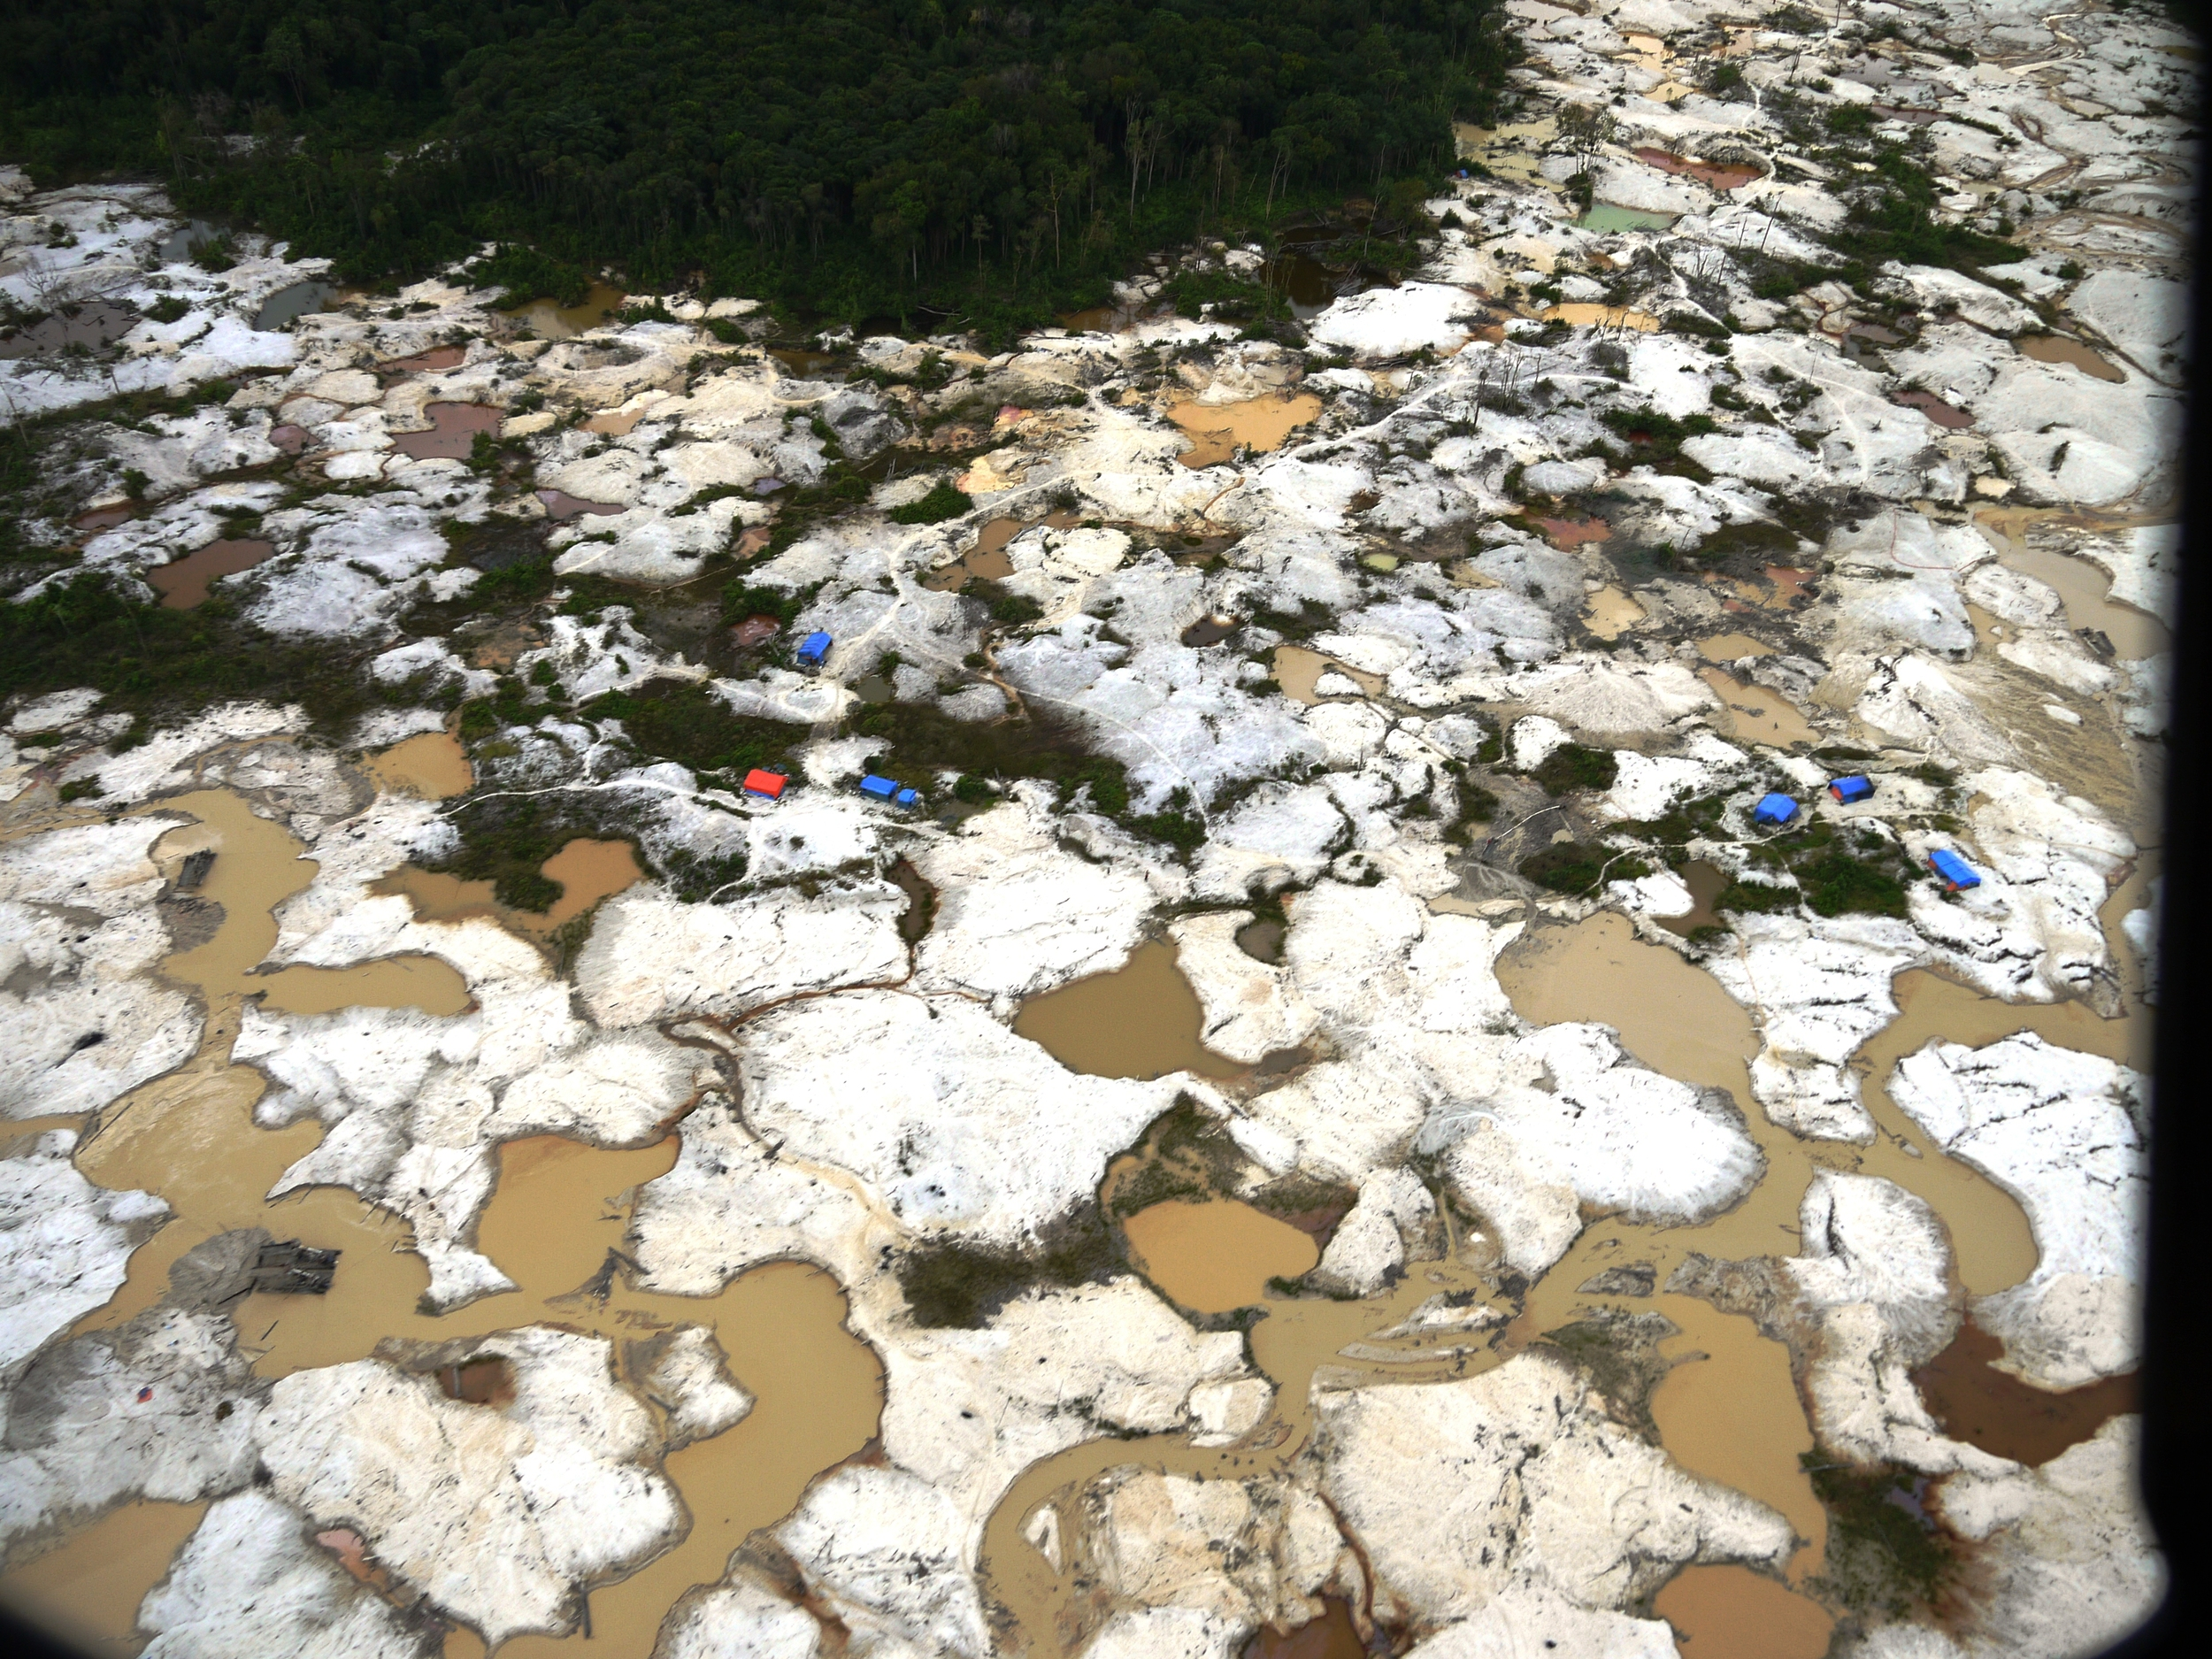 Mining moonscape... illegal gold mining in Sumatra, Indonesia (photo by William Laurance)